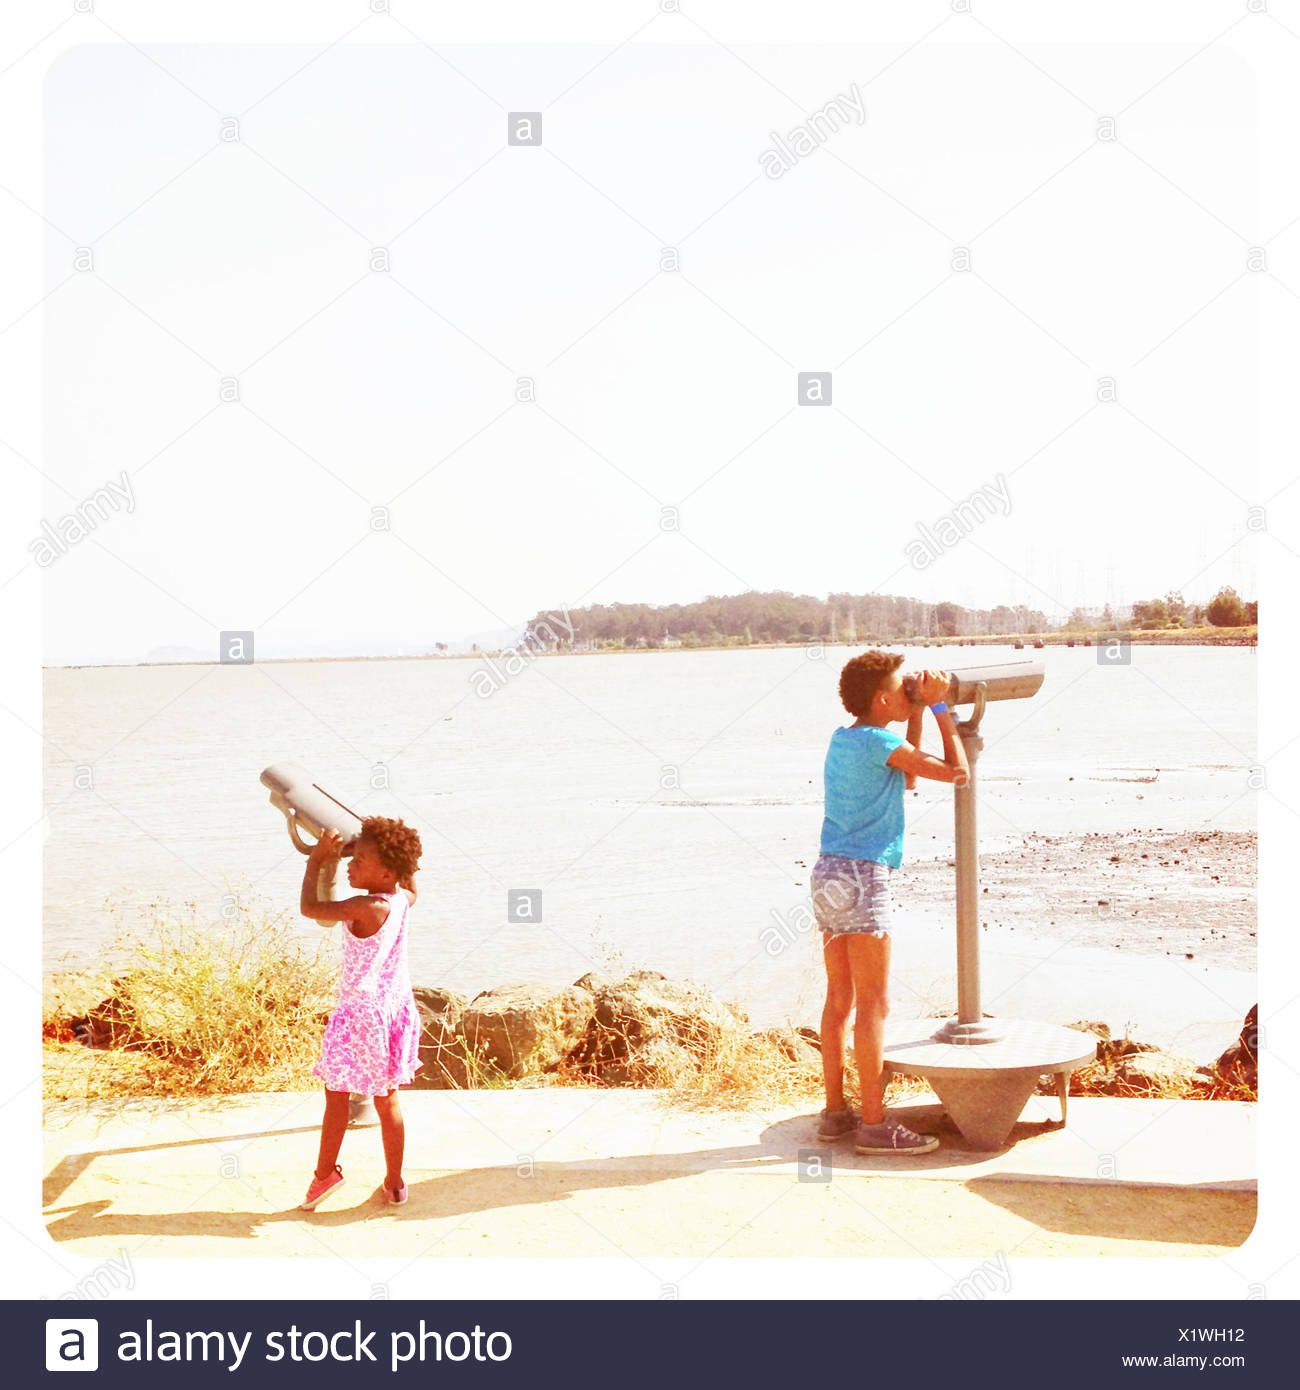 États-unis, Californie, San Francisco, les enfants à l'intermédiaire de télescopes à San Francisco Bay Area Photo Stock